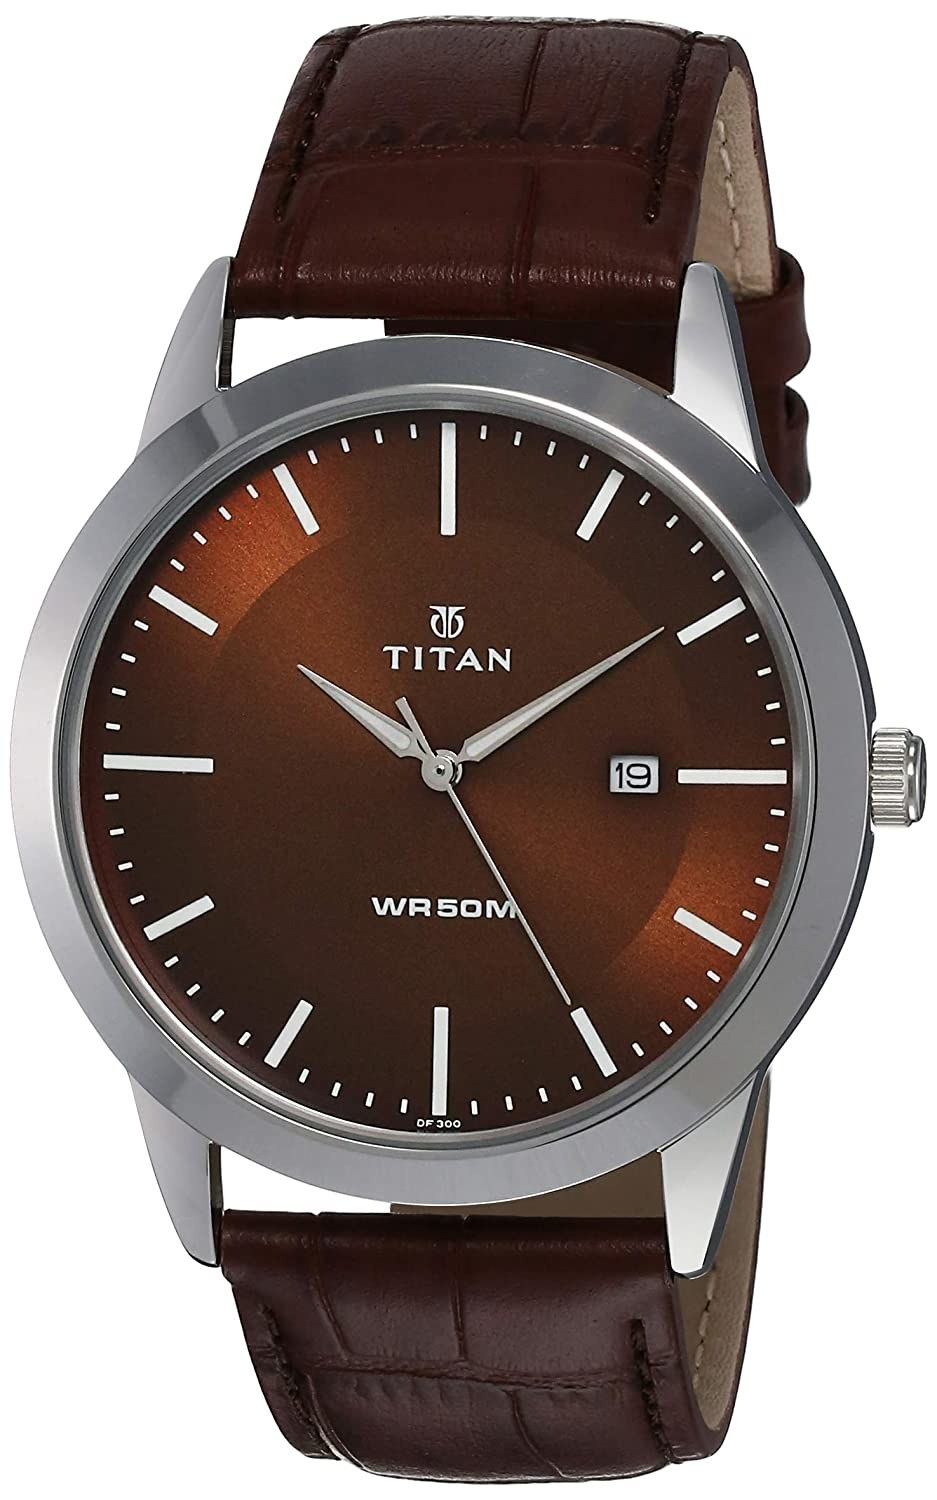 A watch with a brown strap and a brown and silver dial